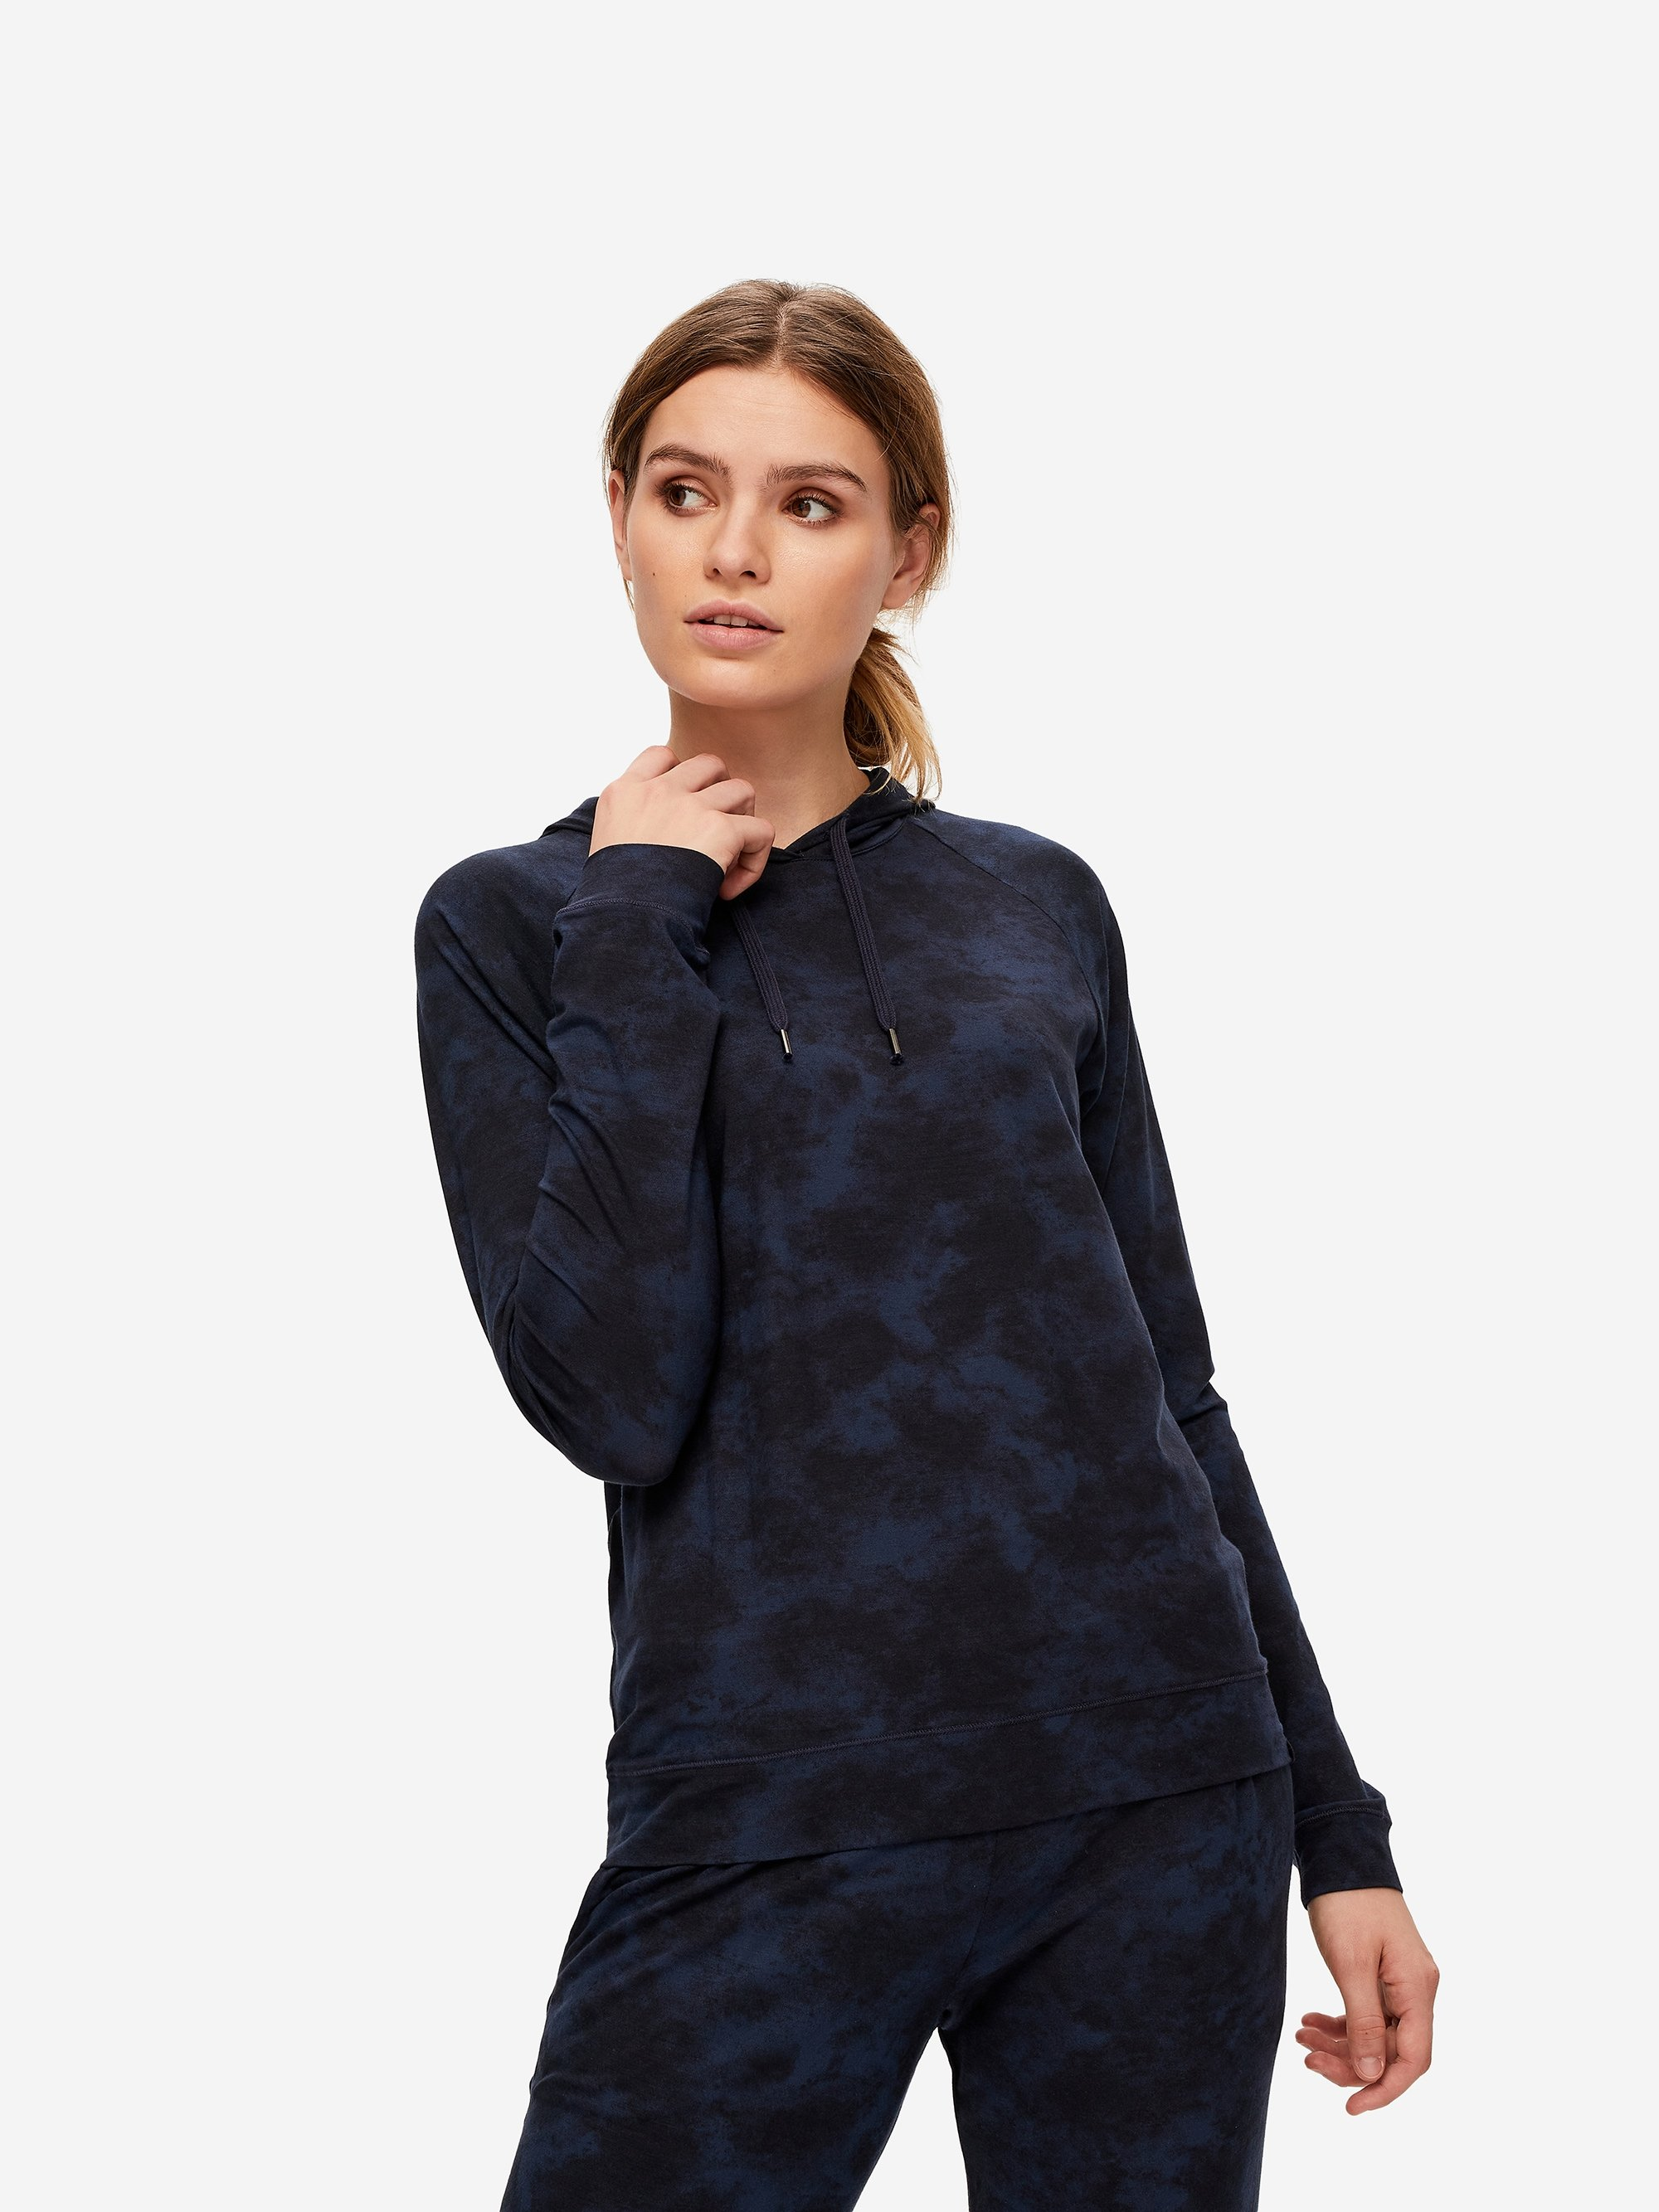 Women's Jersey Pullover Hoodie London 4 Micro Modal Stretch Navy